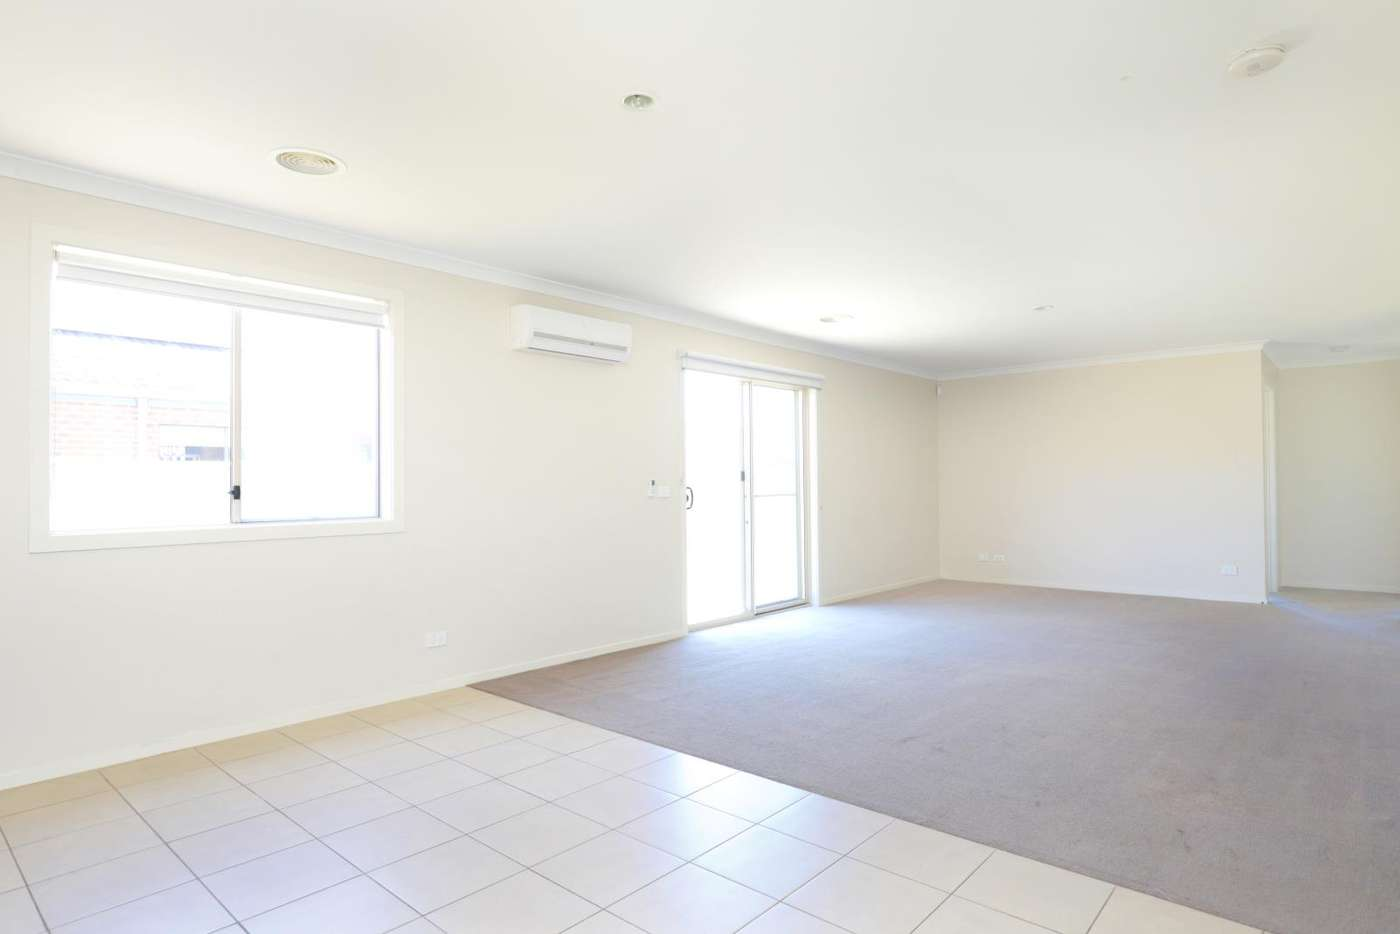 Fifth view of Homely house listing, 5 Narmara Mews, Wyndham Vale VIC 3024